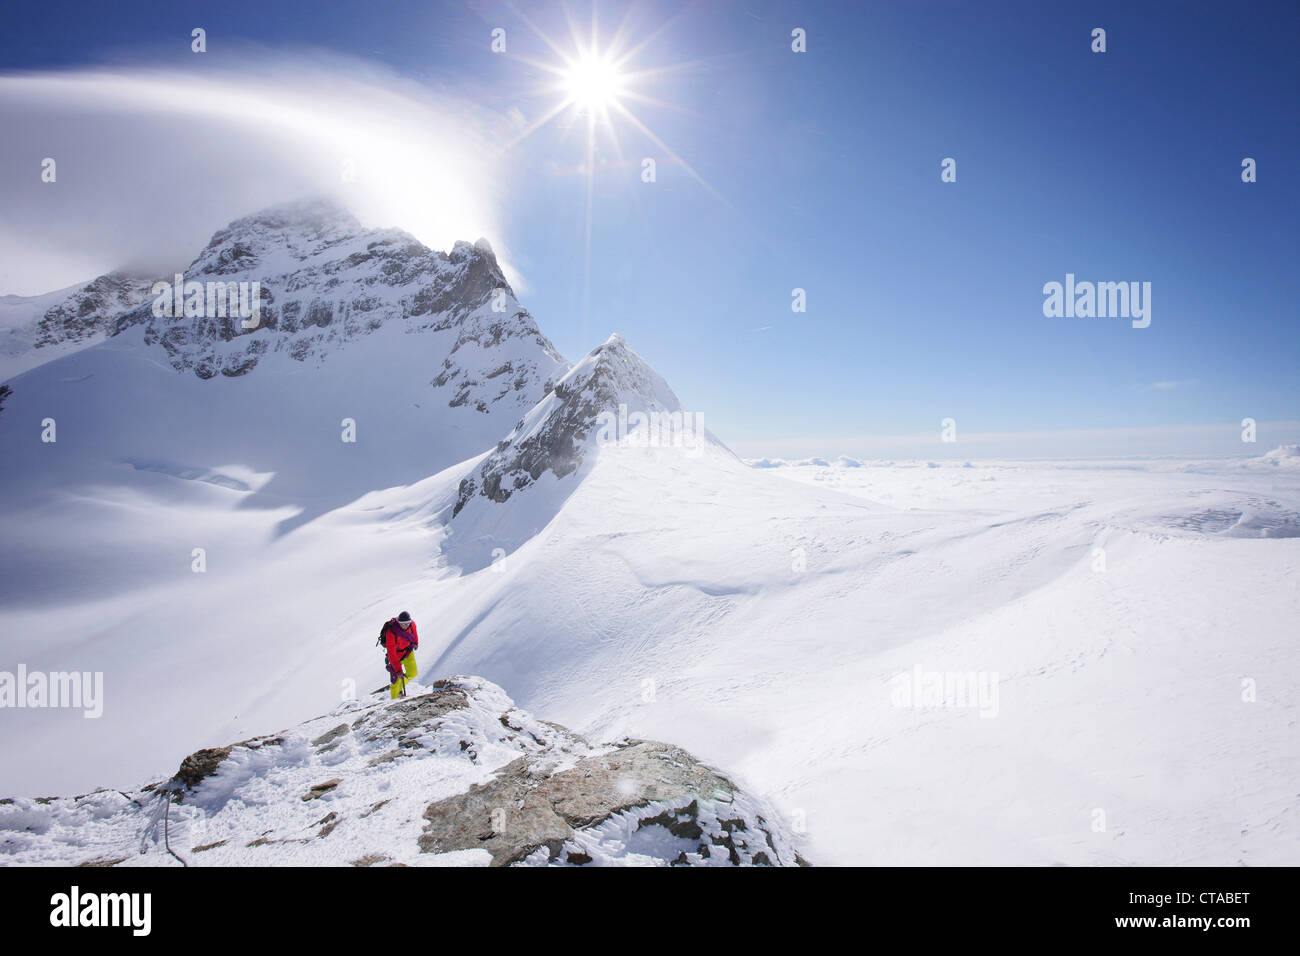 Mountaineer at the summit of Jungfraujoch, Jungfrau in the background, Grindelwald, Bernese Oberland, Switzerland - Stock Image